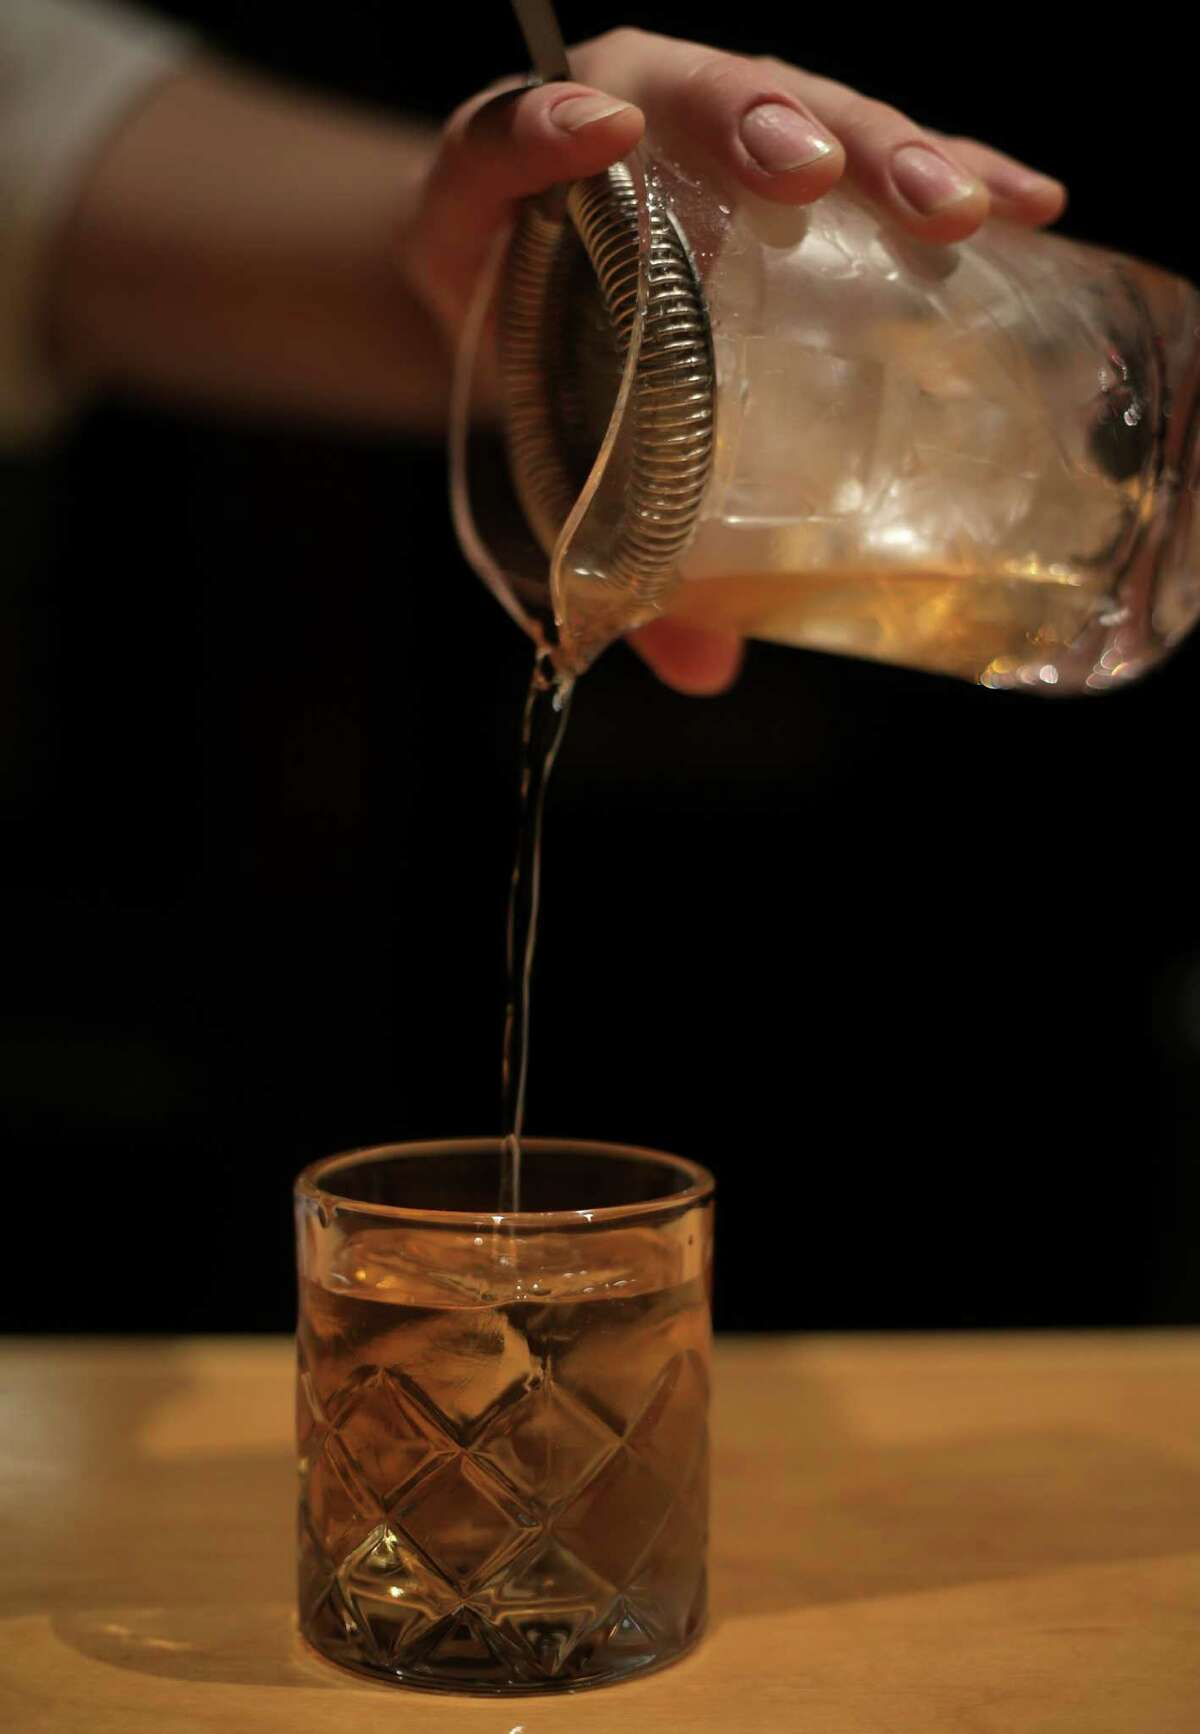 Peter Jahnke pours out a Rusty Nail at Tongue-Cut Sparrow, 310 Main, in downtown Houston.